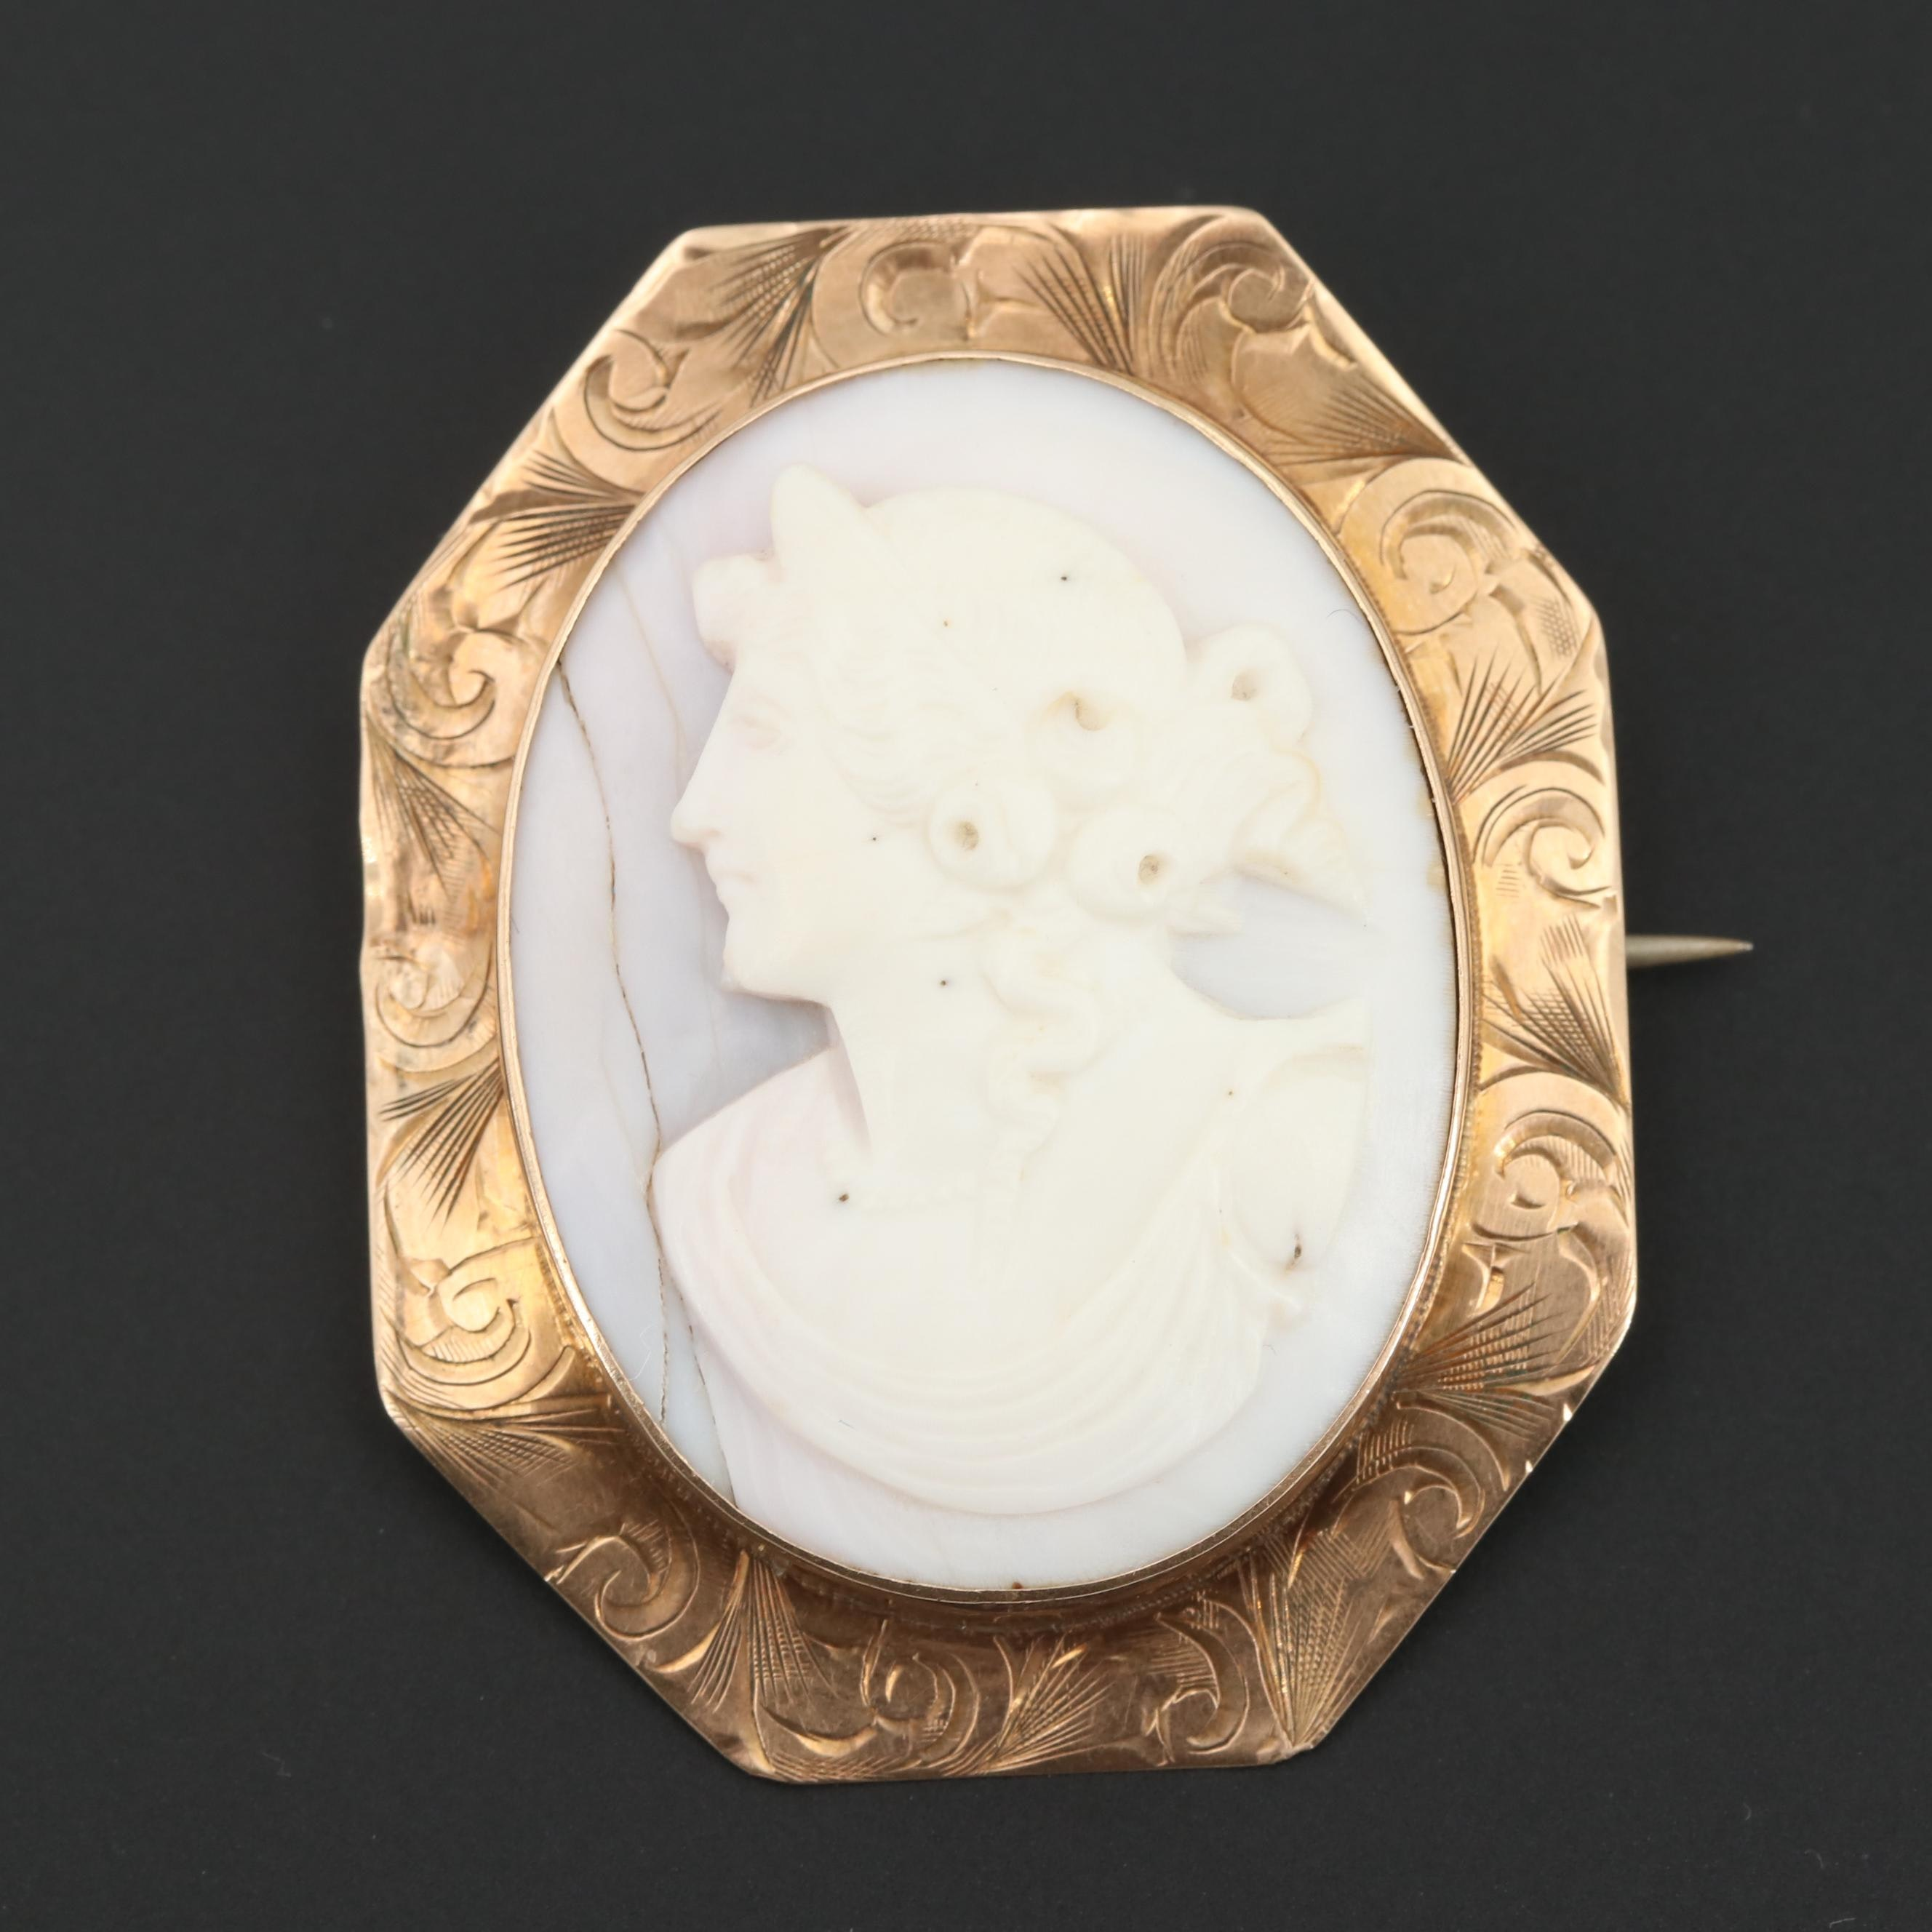 Circa 1930 10K Rose Gold Carved Conch Shell Cameo Converter Brooch